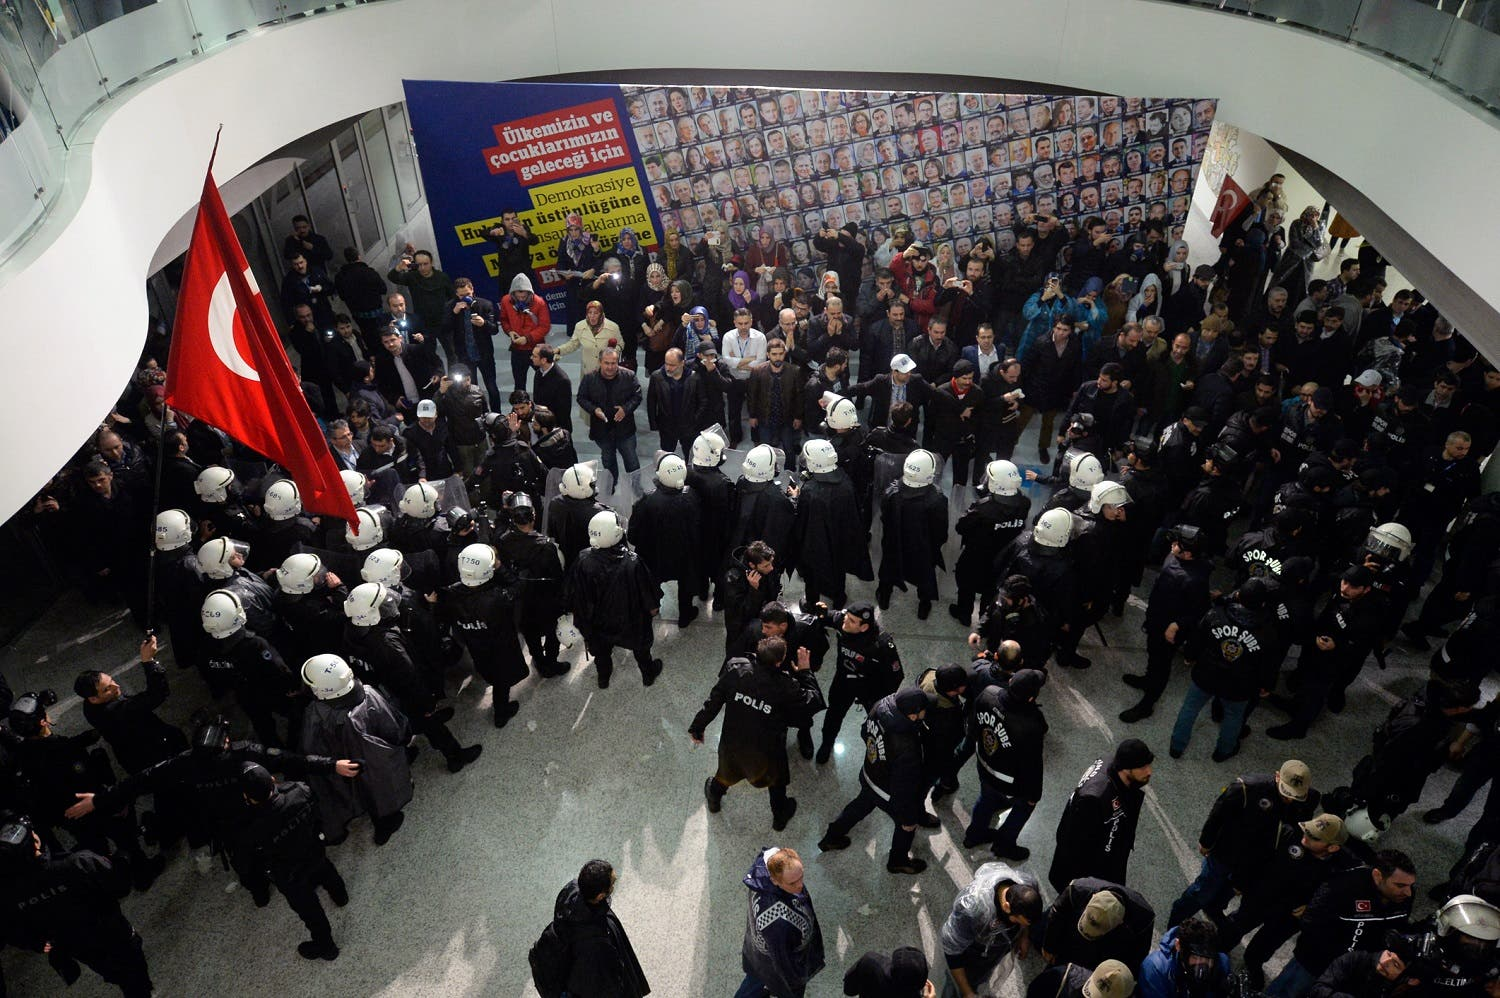 Riot police enter the headquarters of Zaman newspaper in Istanbul, late Friday, March 4, 2016 after a local court ordered that Turkey's largest-circulation, opposition newspaper, which is linked to a U.S.-based Muslim cleric, be placed under the management of trustees _ a move that heightens concerns over deteriorating press freedoms in Turkey. AP